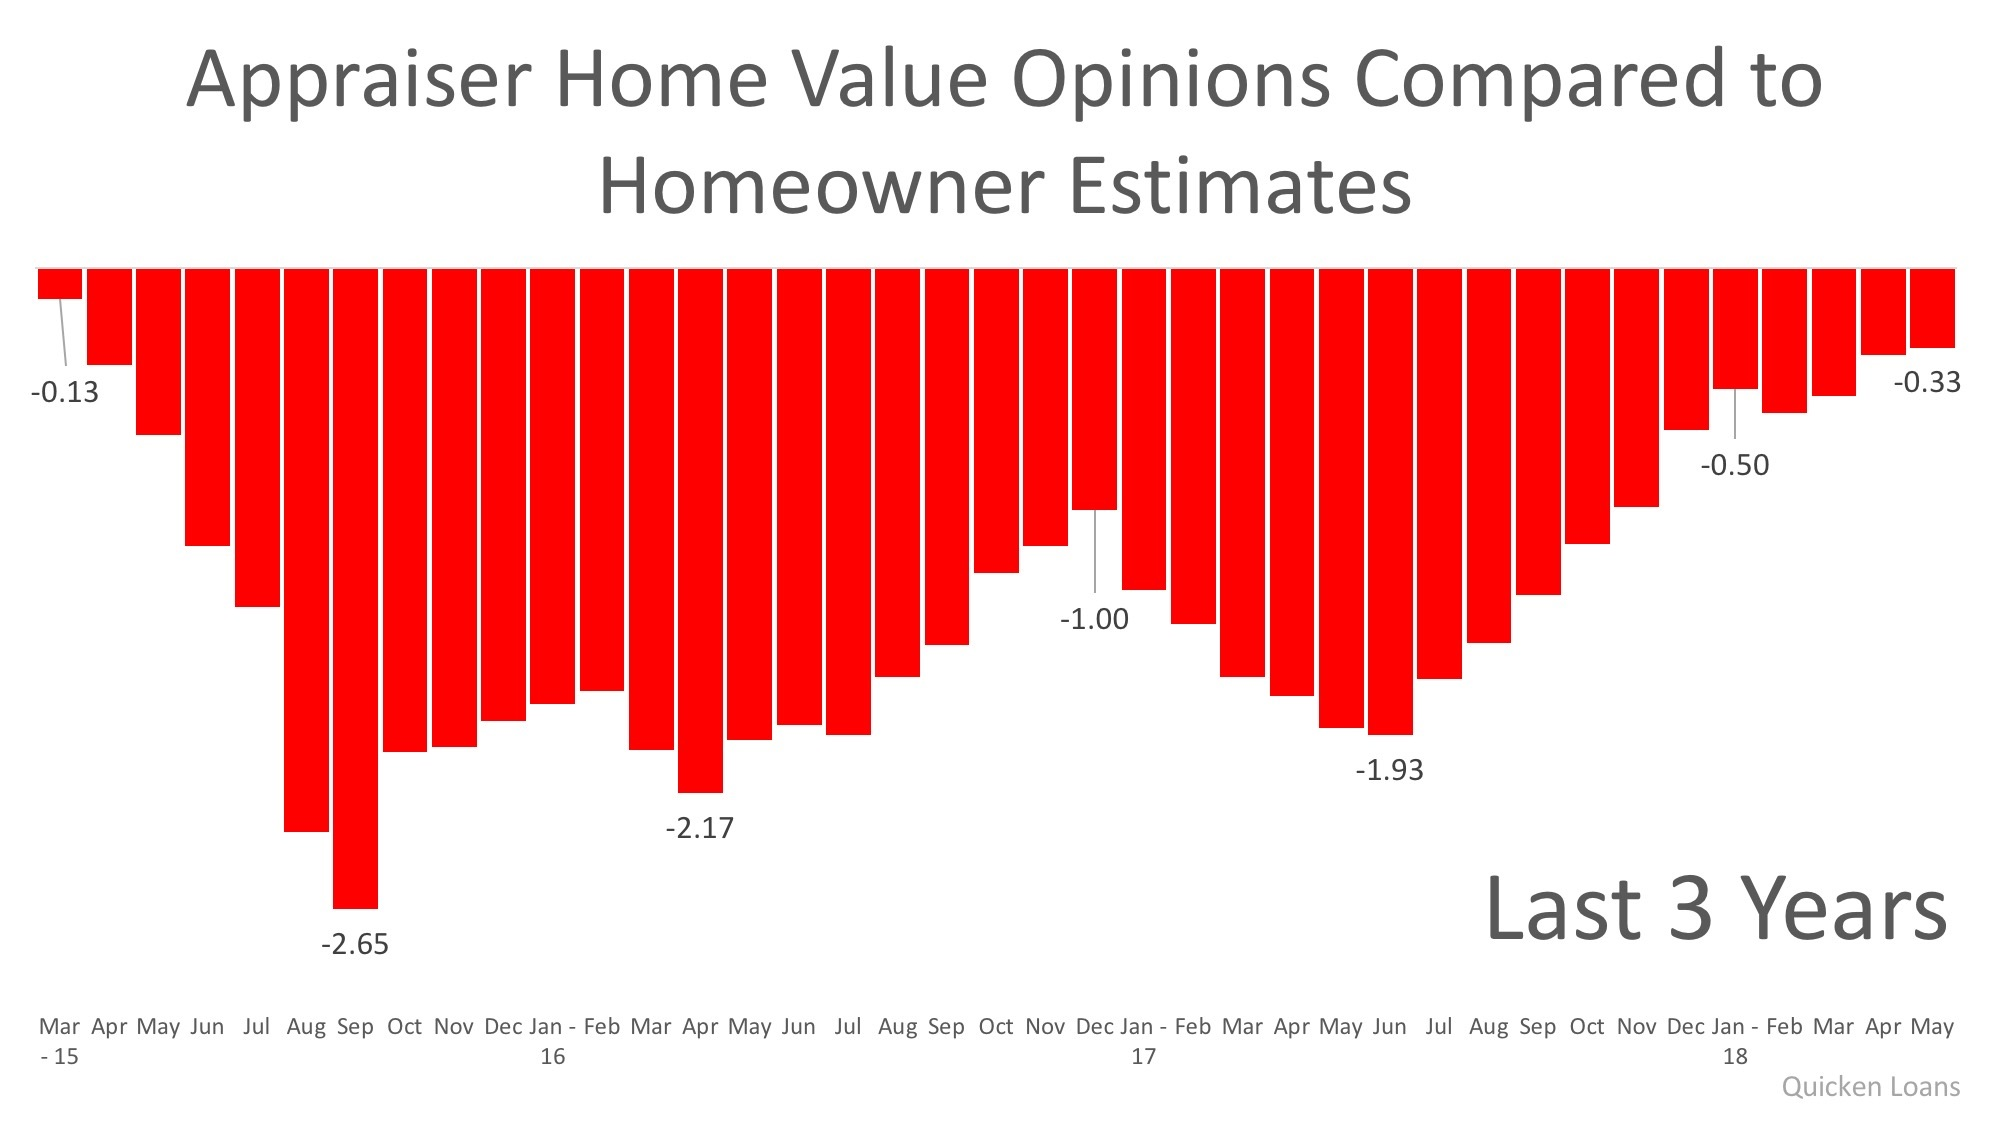 Appraisers Home Value